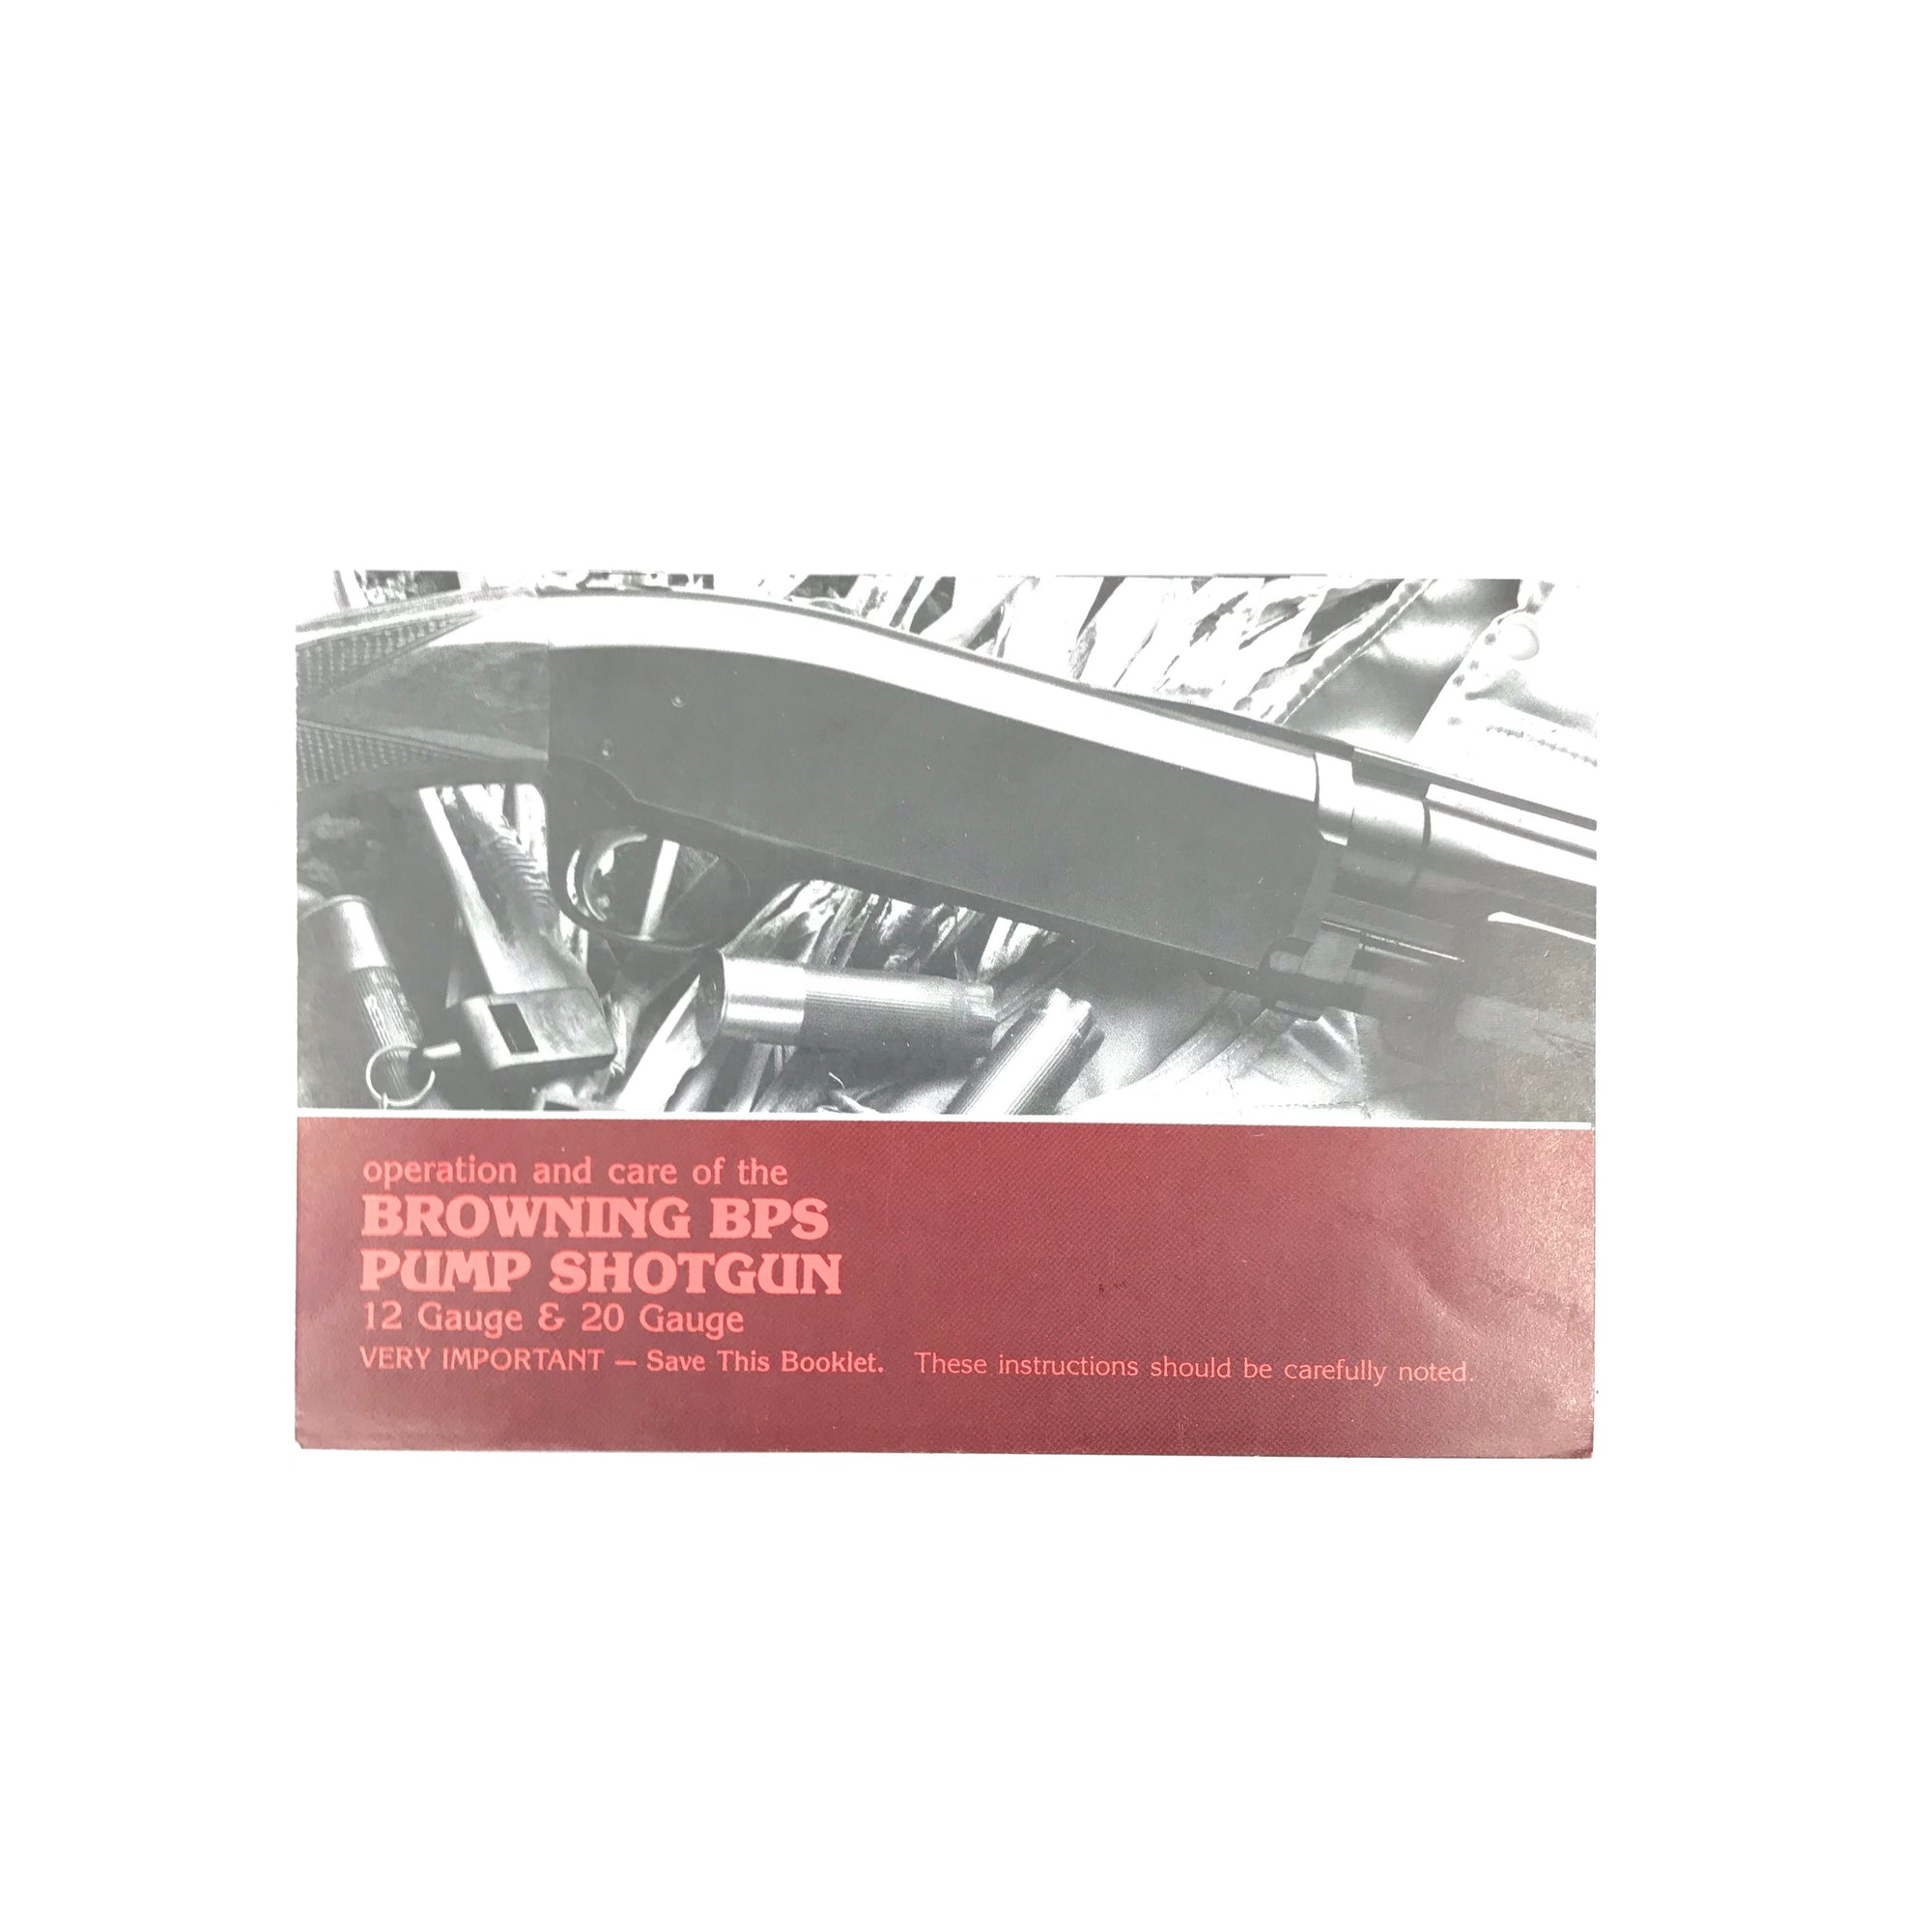 Browning BPS Pump Action Shotgun/Operation & Care pamphlet